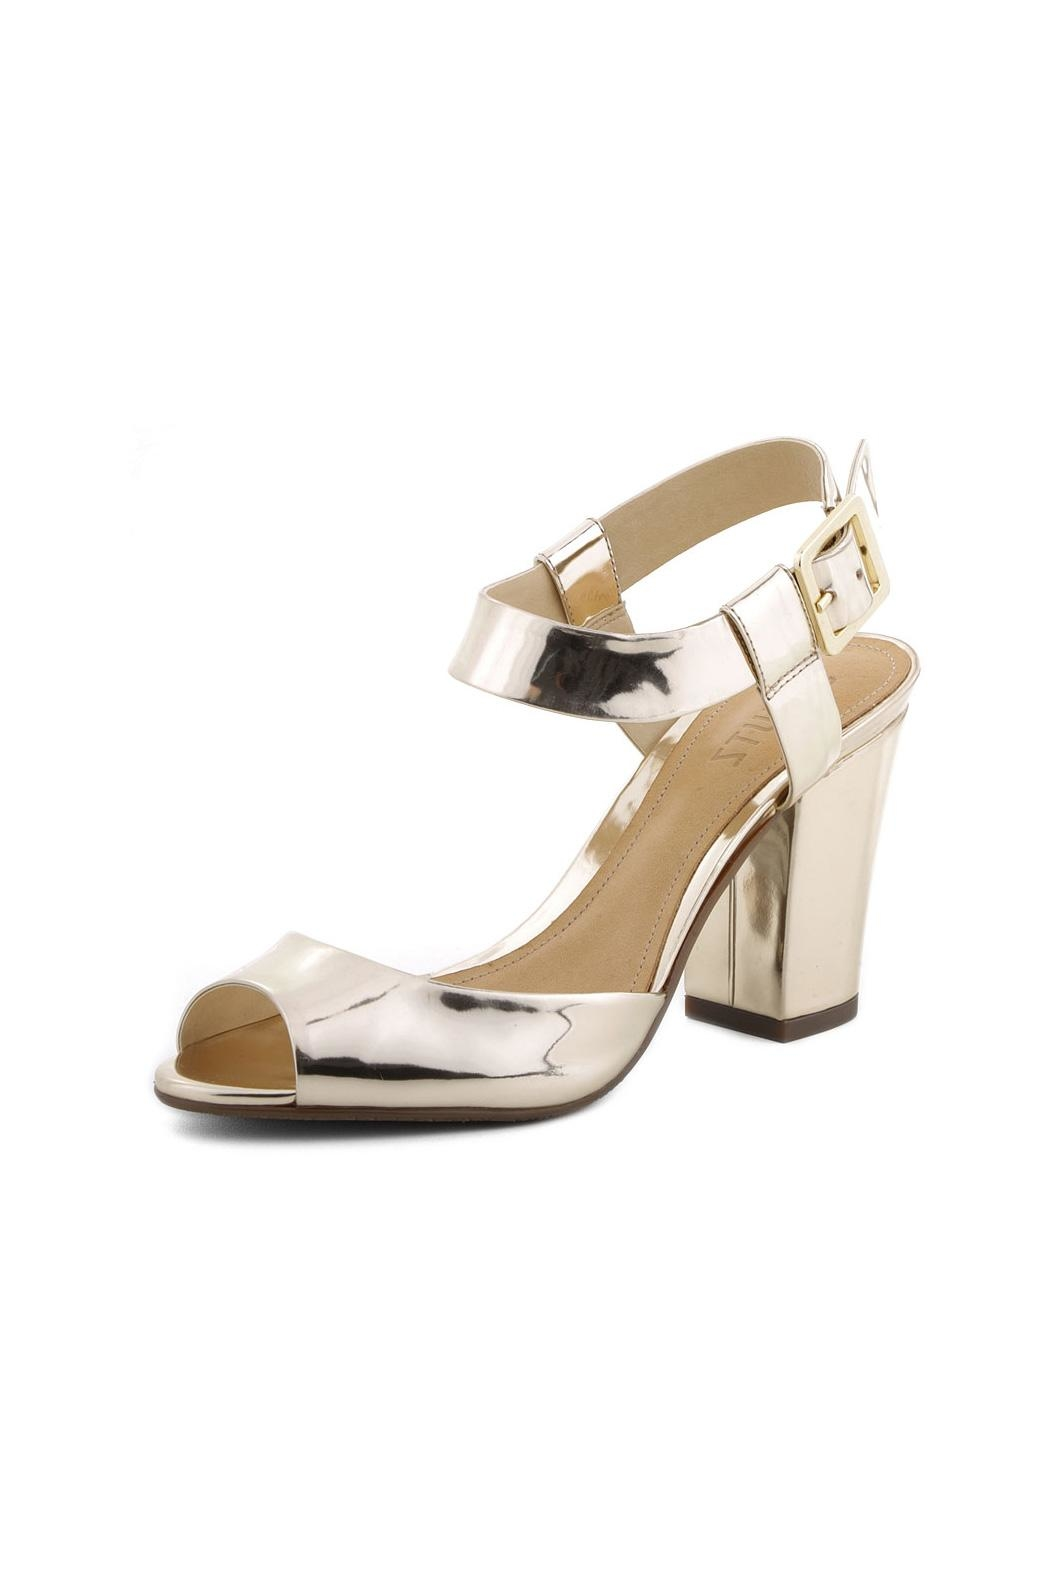 Schutz Chunky Gold Colored Sandals - Main Image